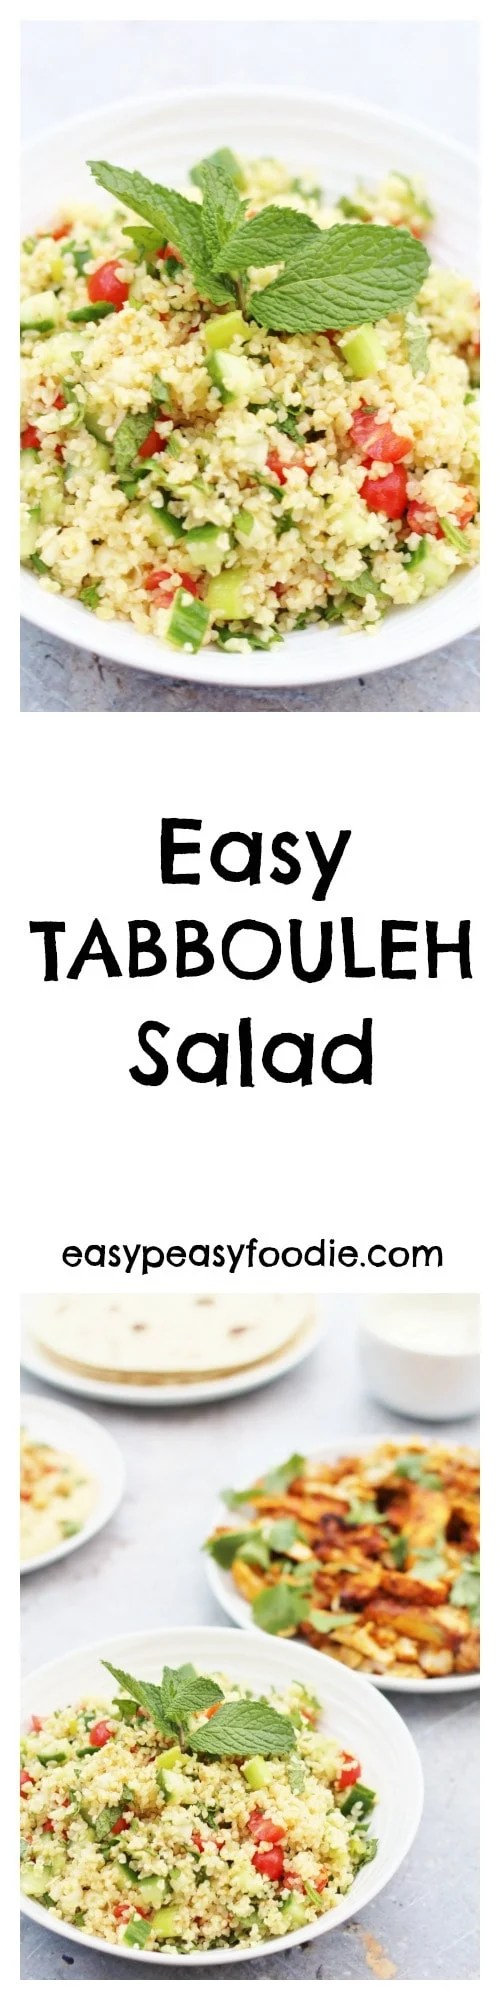 Want to know what my most requested recipe is? It's this Easy Tabbouleh Salad – a deliciously simple dish to make to take along to a BBQ or pot luck dinner and the perfect accompaniment to my Oven Baked Chicken Shawarma. #tabbouleh #salad #bbq #potluck #side #main #middleeastern #vegetarian #vegan #easyrecipes #midweekmeals #familydinners #easypeasyfoodie